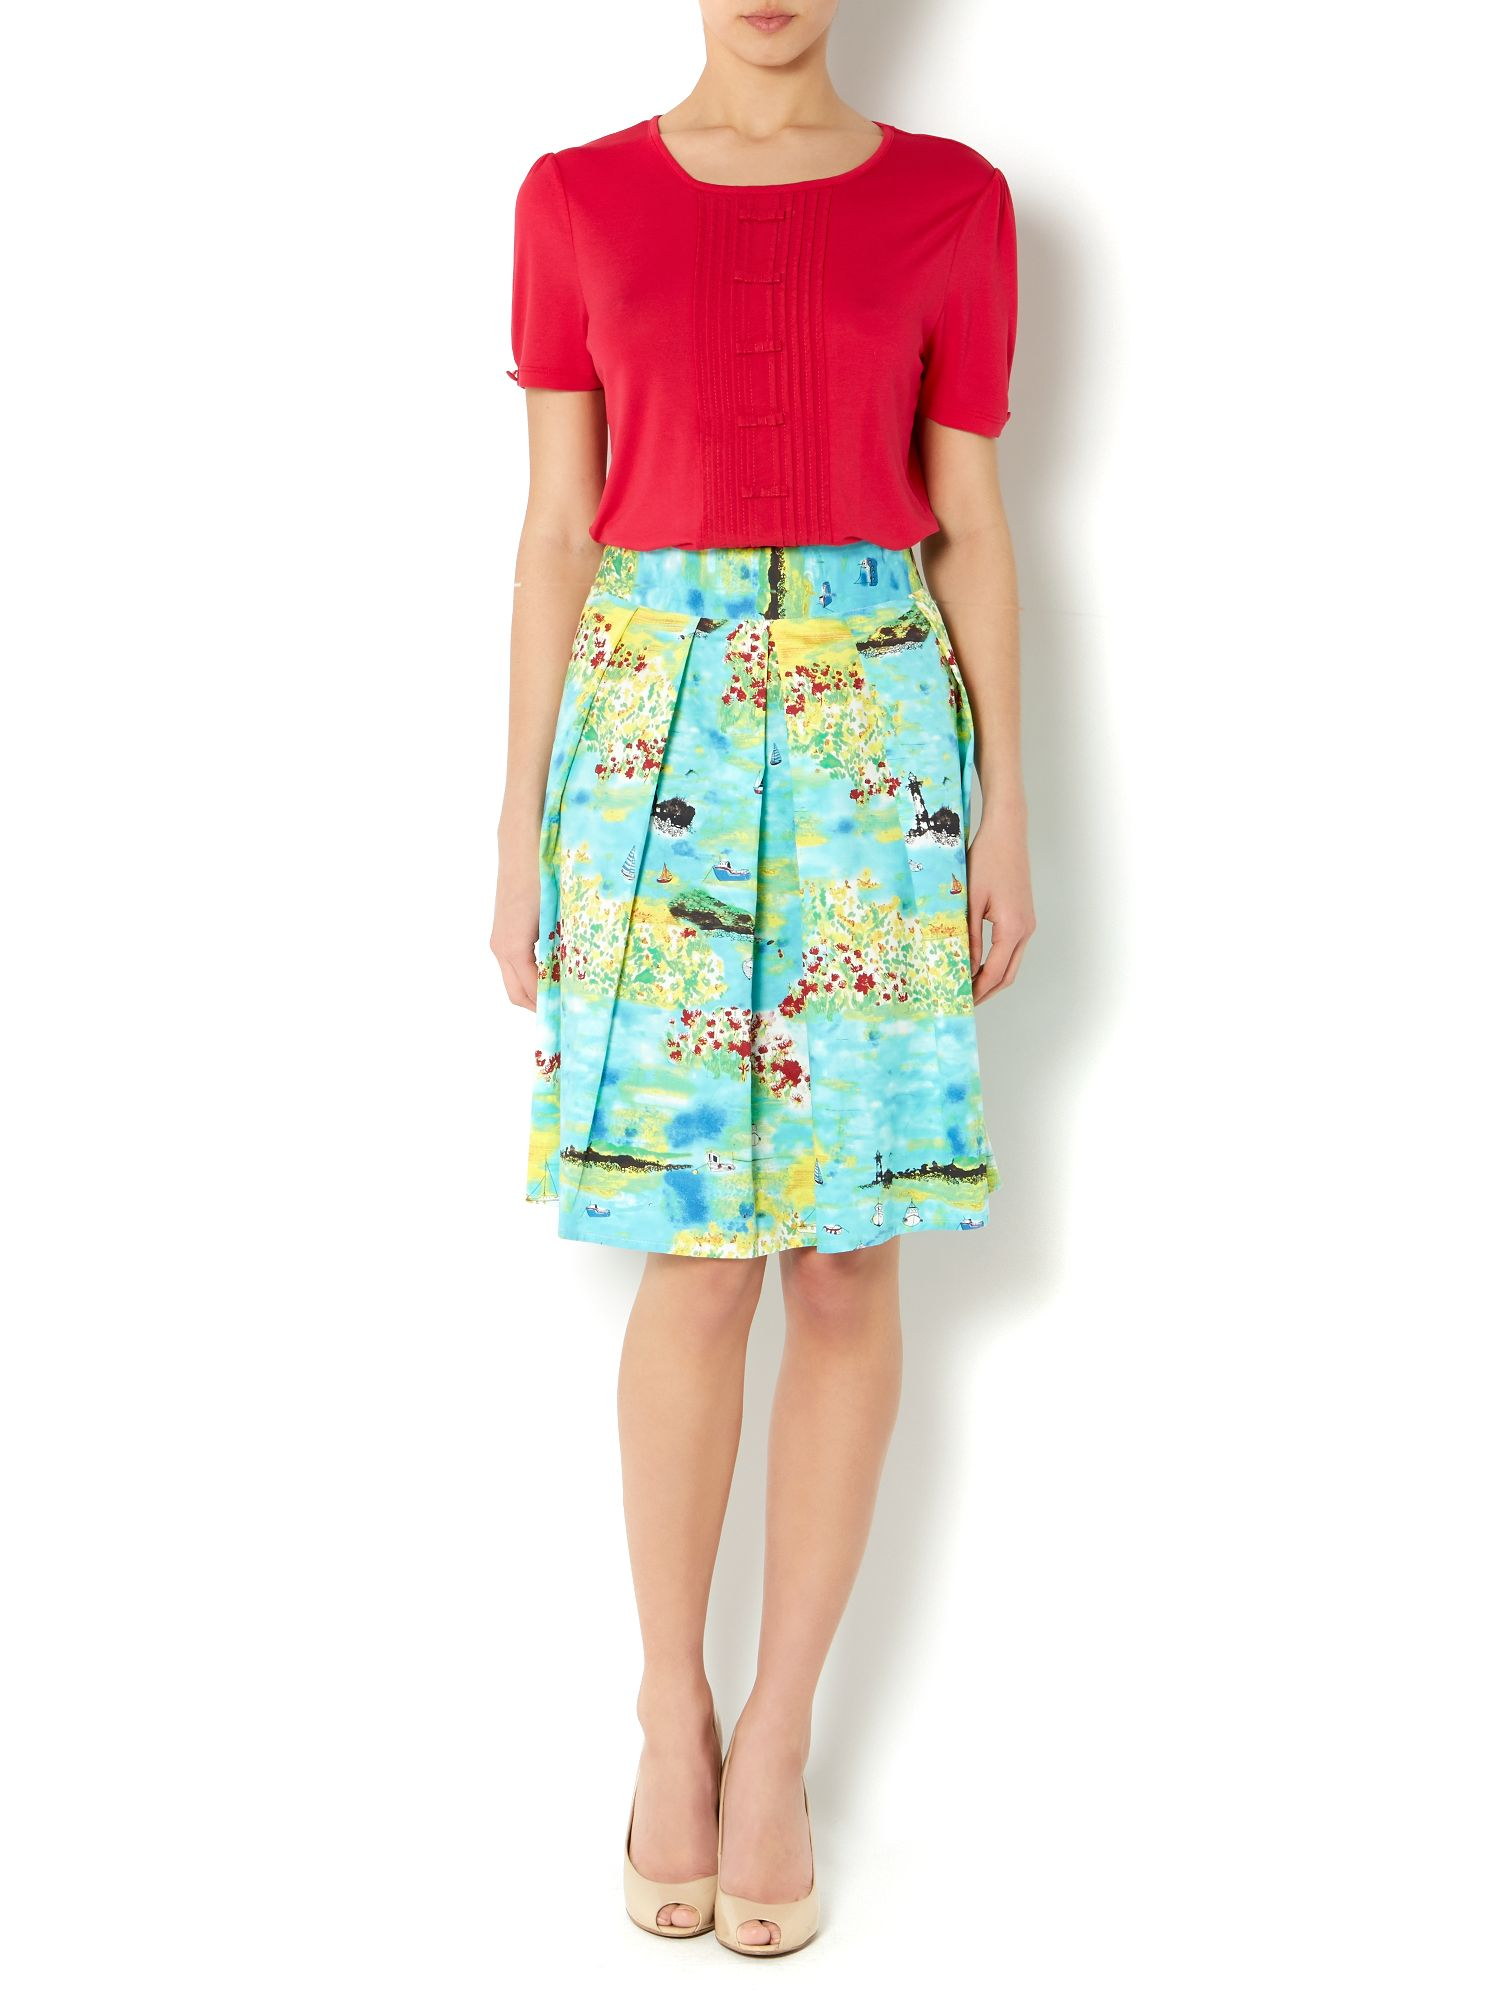 Ladies seaside print skirt